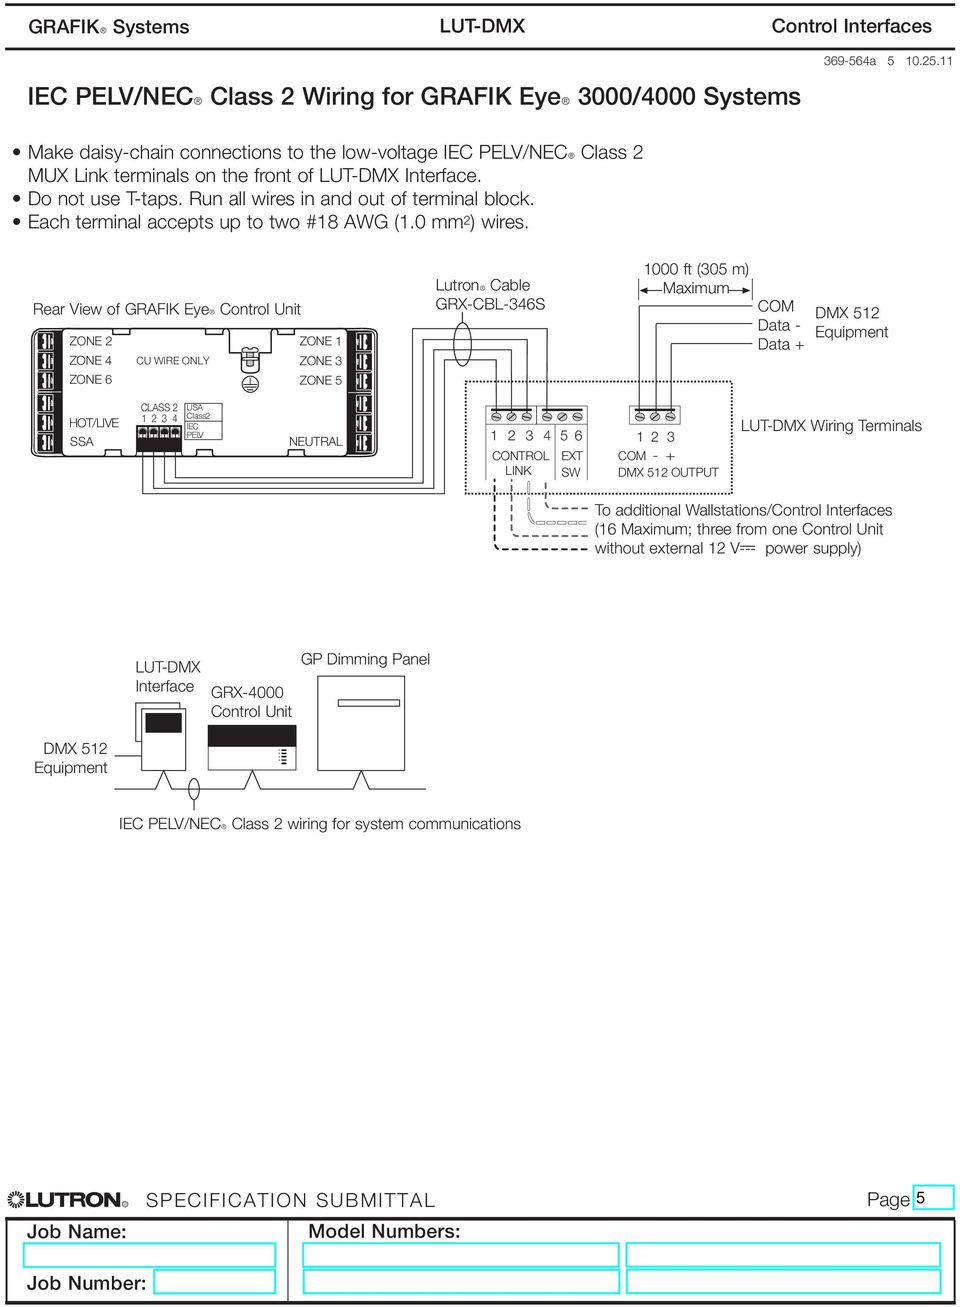 hight resolution of rear view of grafik eyer control unit zone 2 zone 1 zone 4 cu wire only